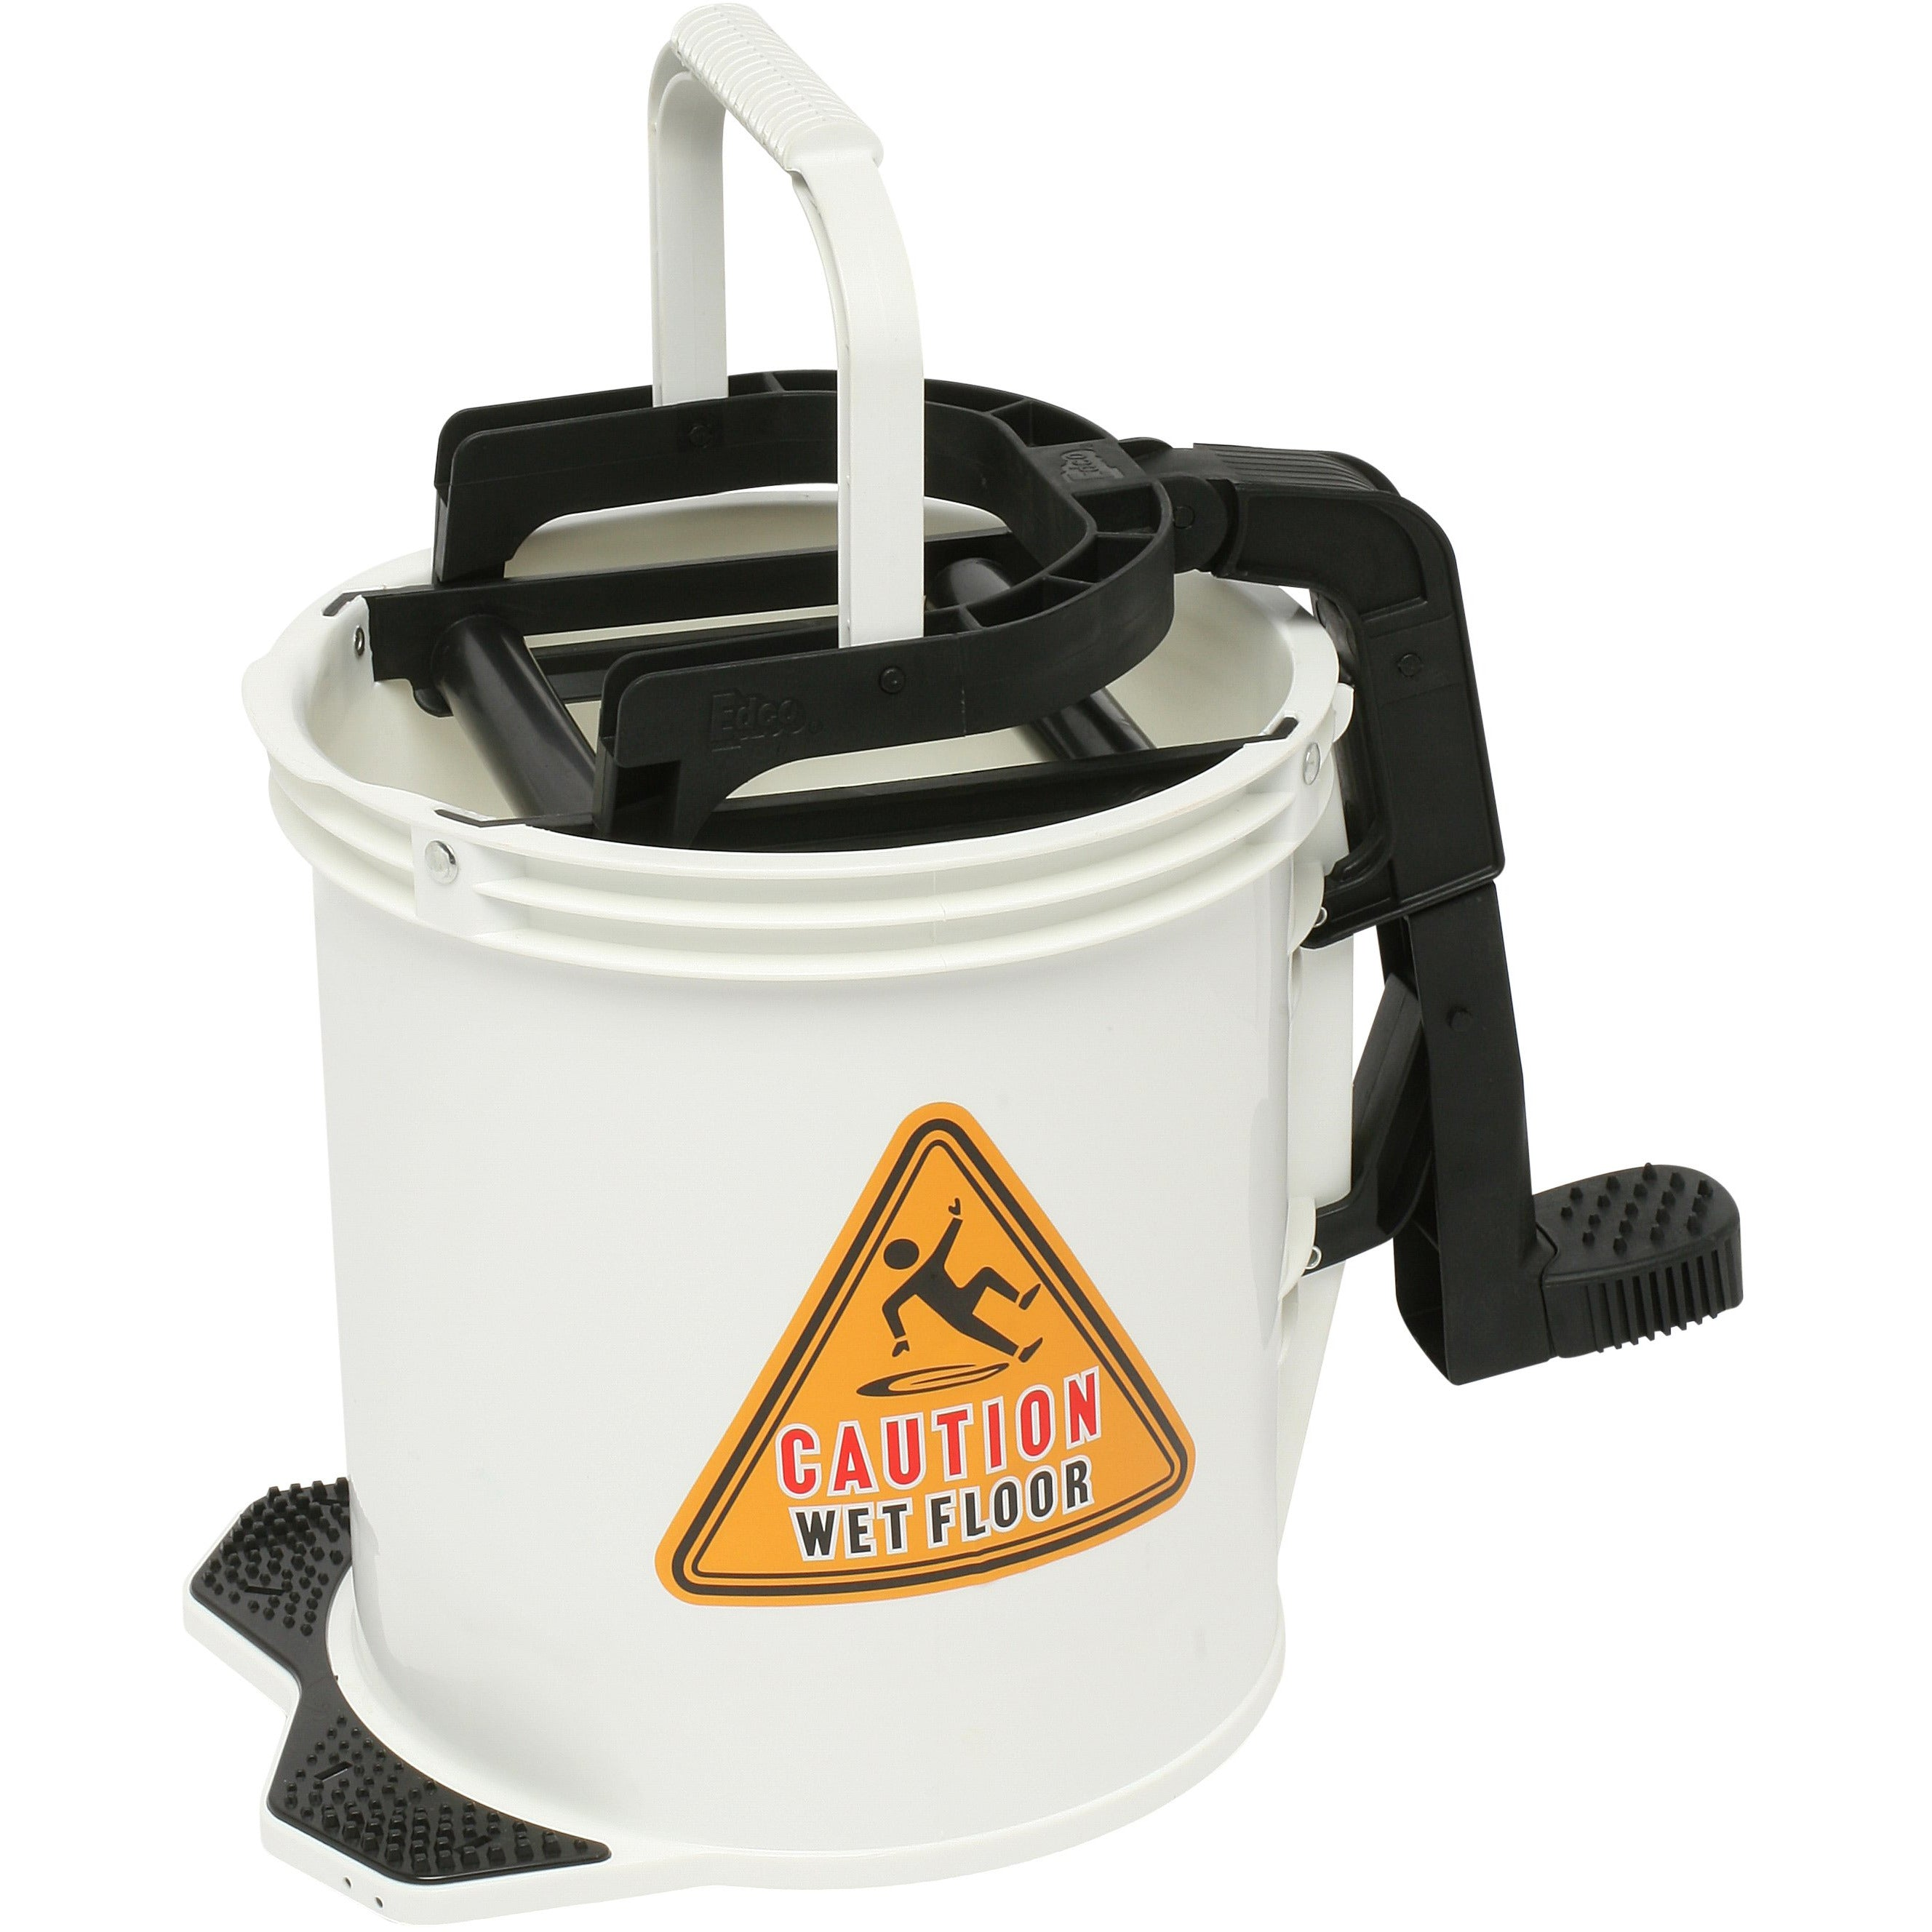 EDCO ENDURO NYLON WRINGER BUCKET WHITE